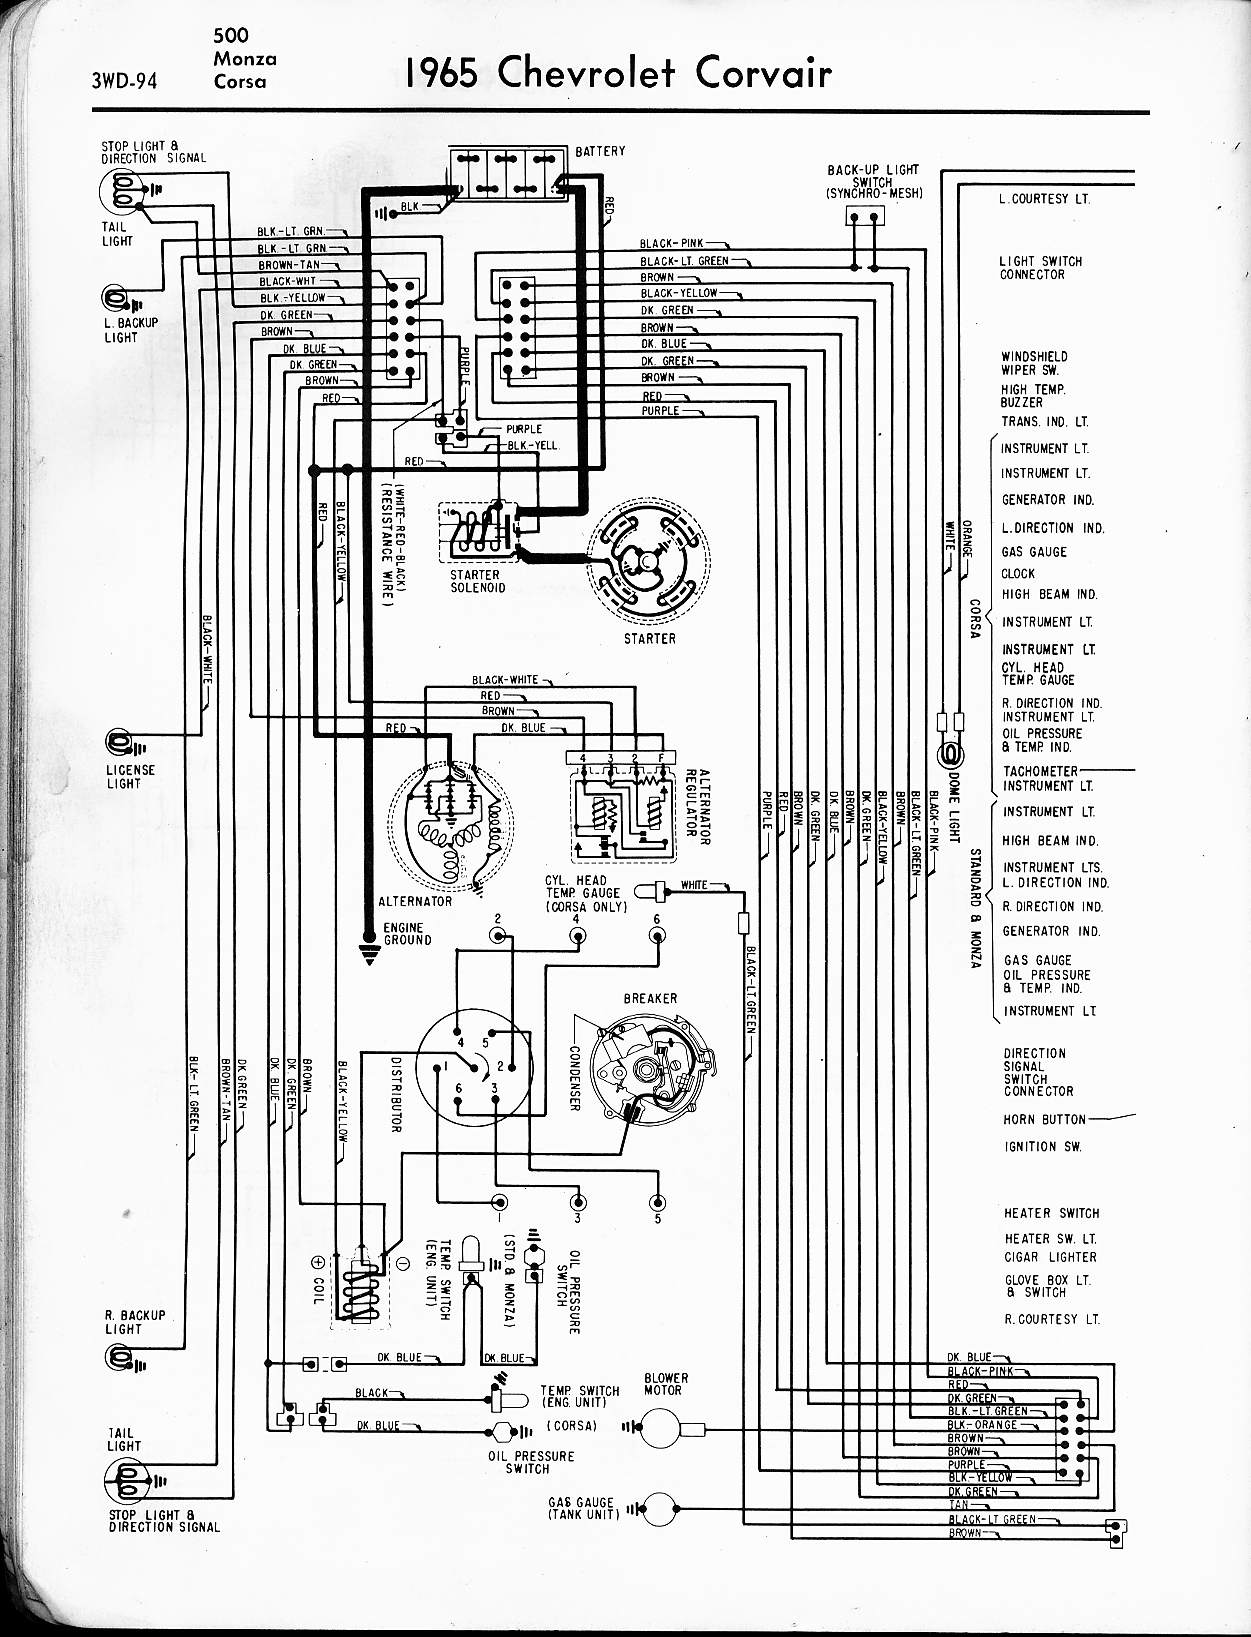 1967 Chevy Impala Wiring Harness Diagram Library 1957 Tail Light 1965 Corvair Pictures U2022 Rh Mapavick Co Uk 1964